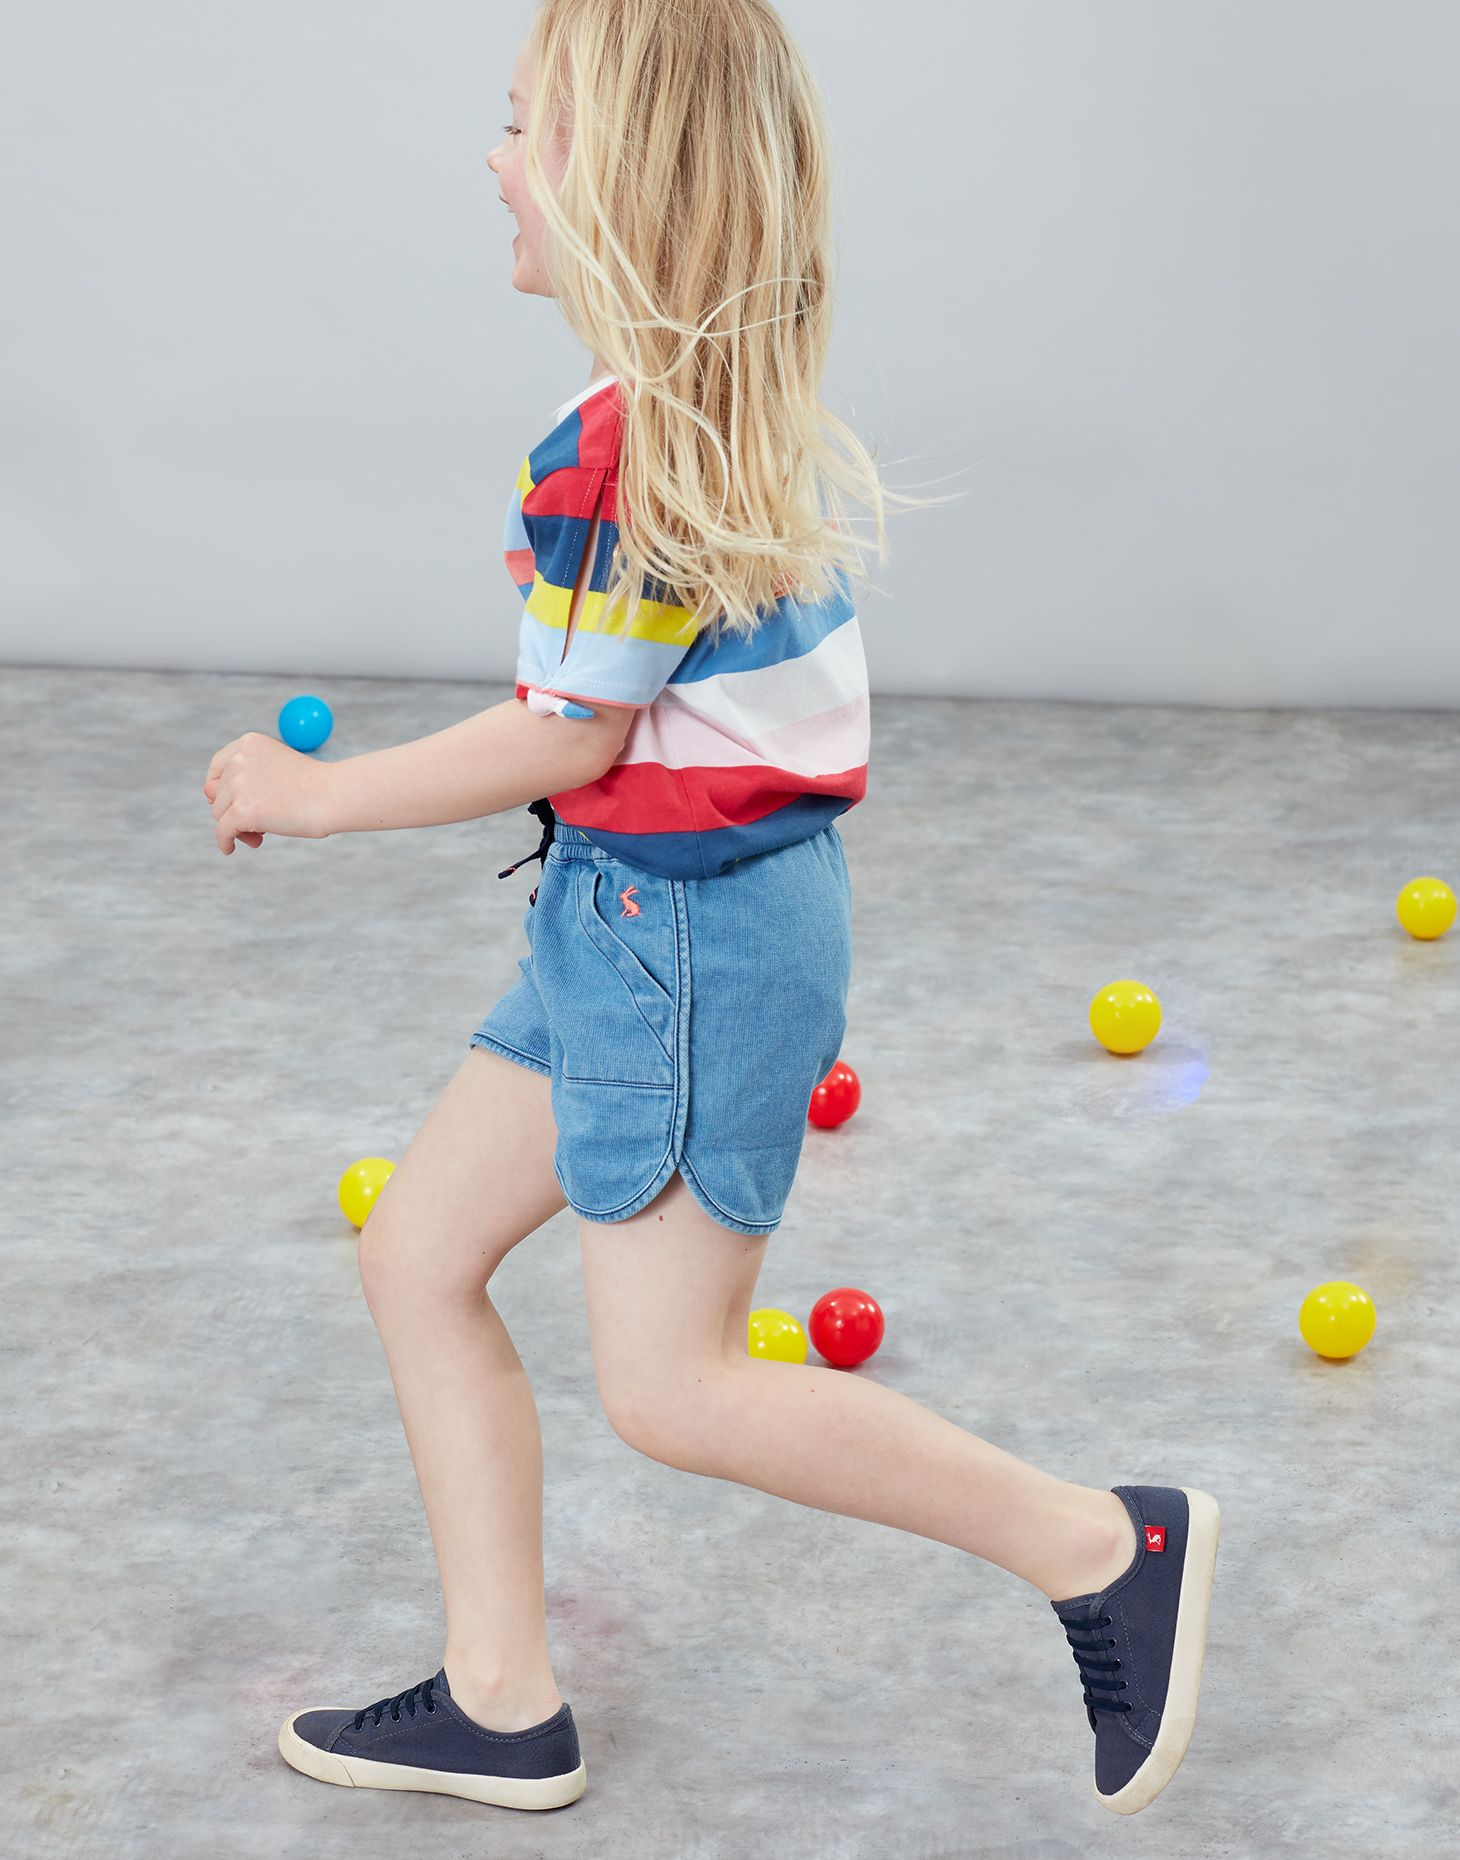 Joules Girls Shorts BNWT Age 3 Years